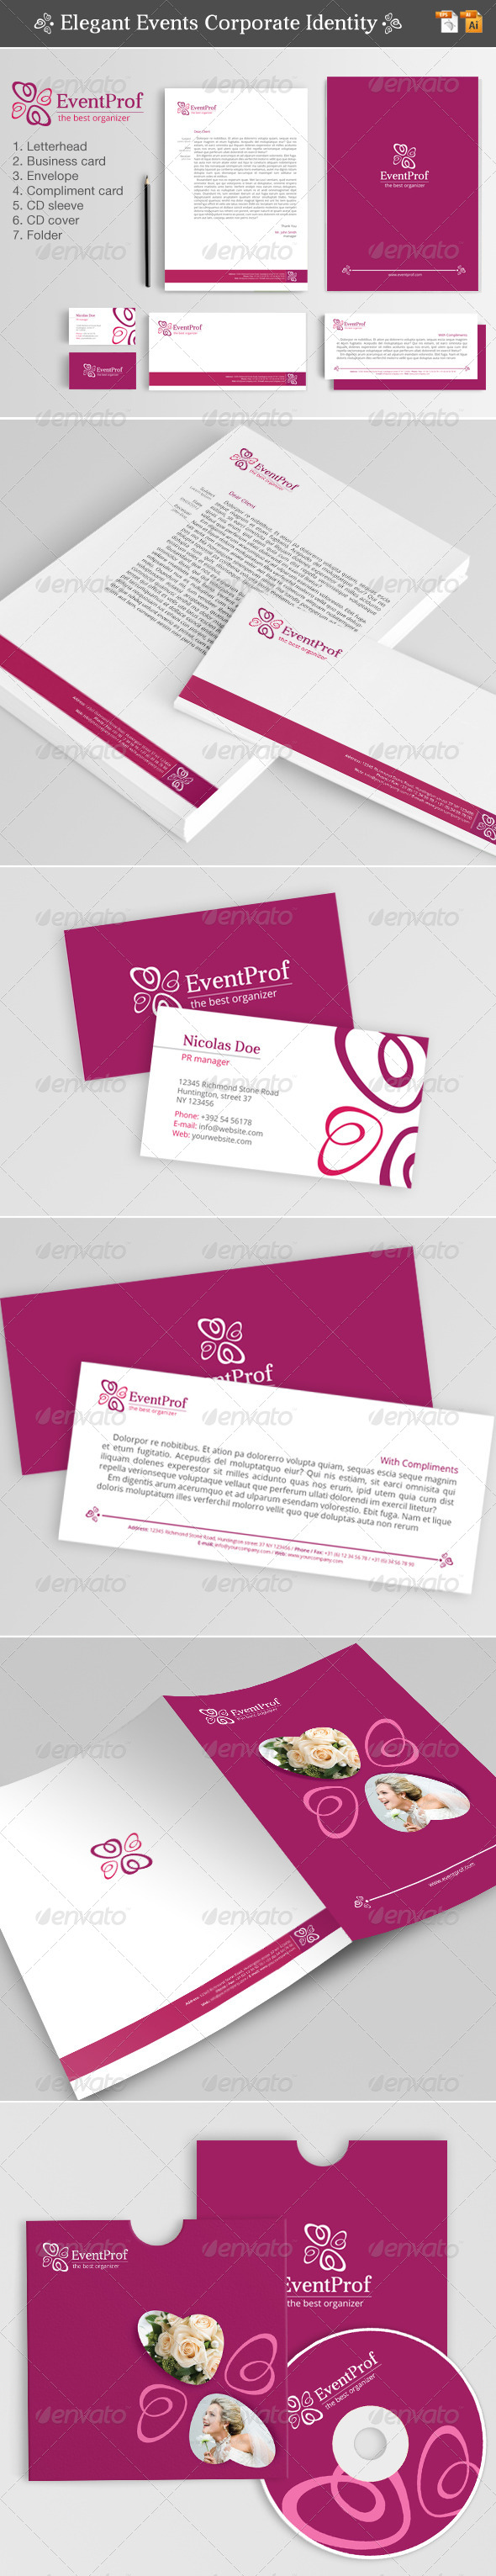 GraphicRiver Elegant Events Corporate Identity 4515102